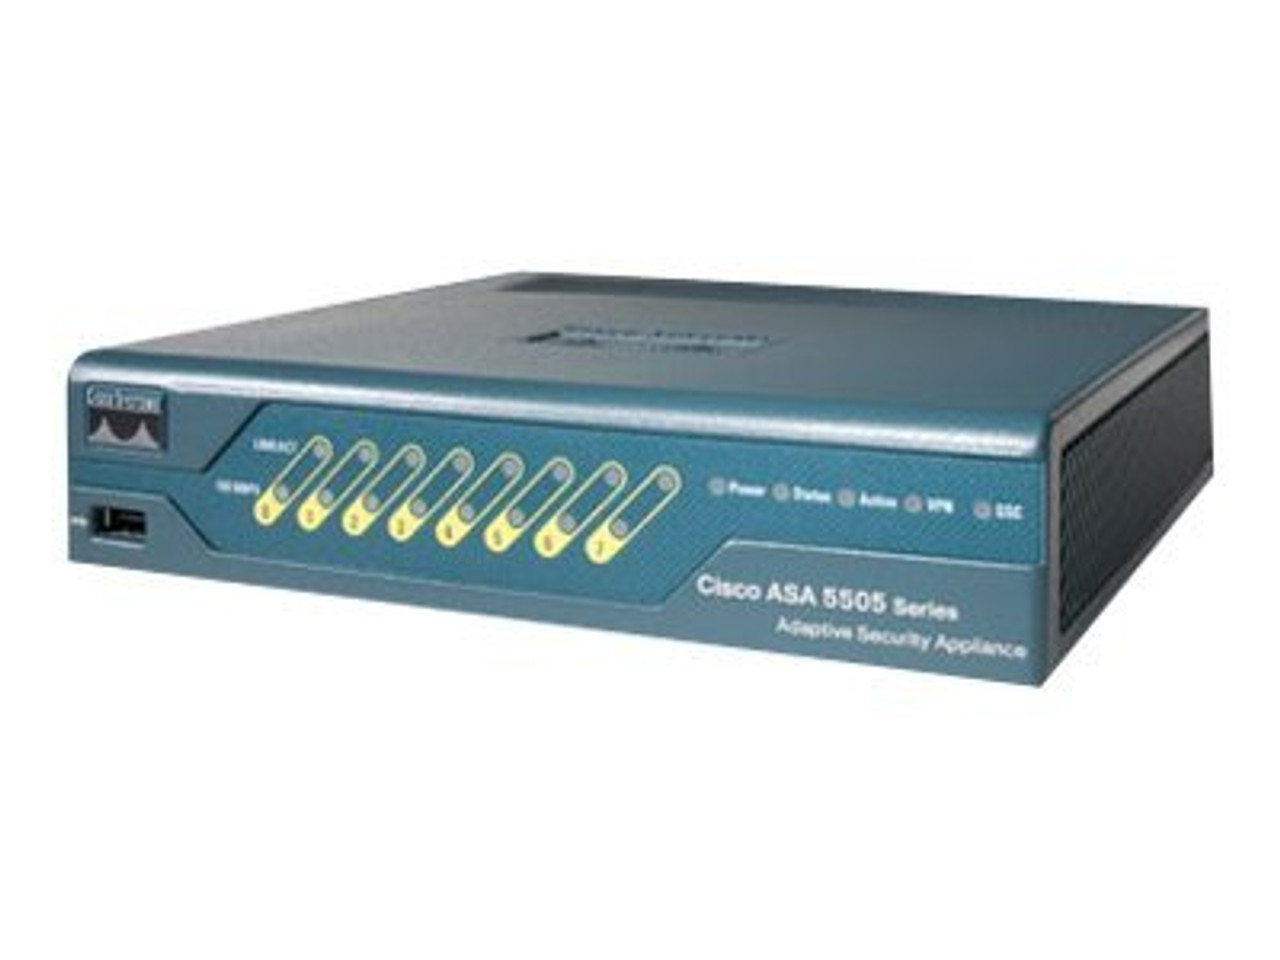 Cisco ASA 5505 Firewall Edition Bundle Security Appliance 8 Ports